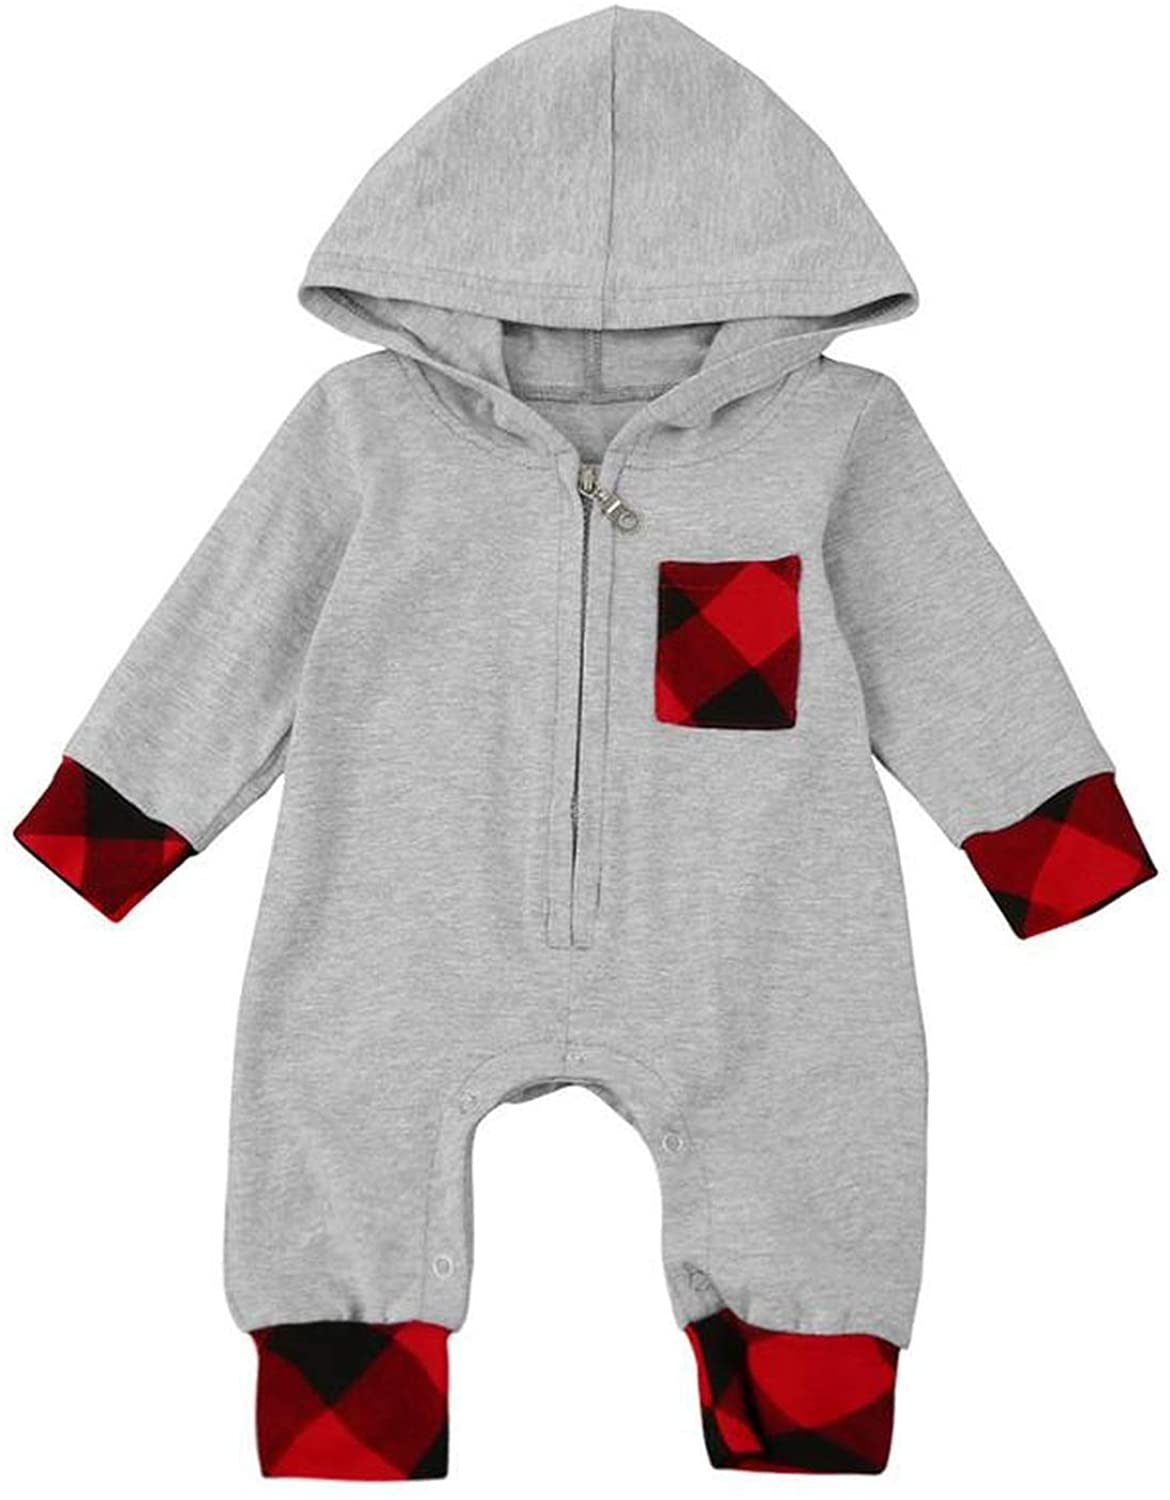 Infant Baby Boy Girl Plaid Hooded Jumpsuit Outfits